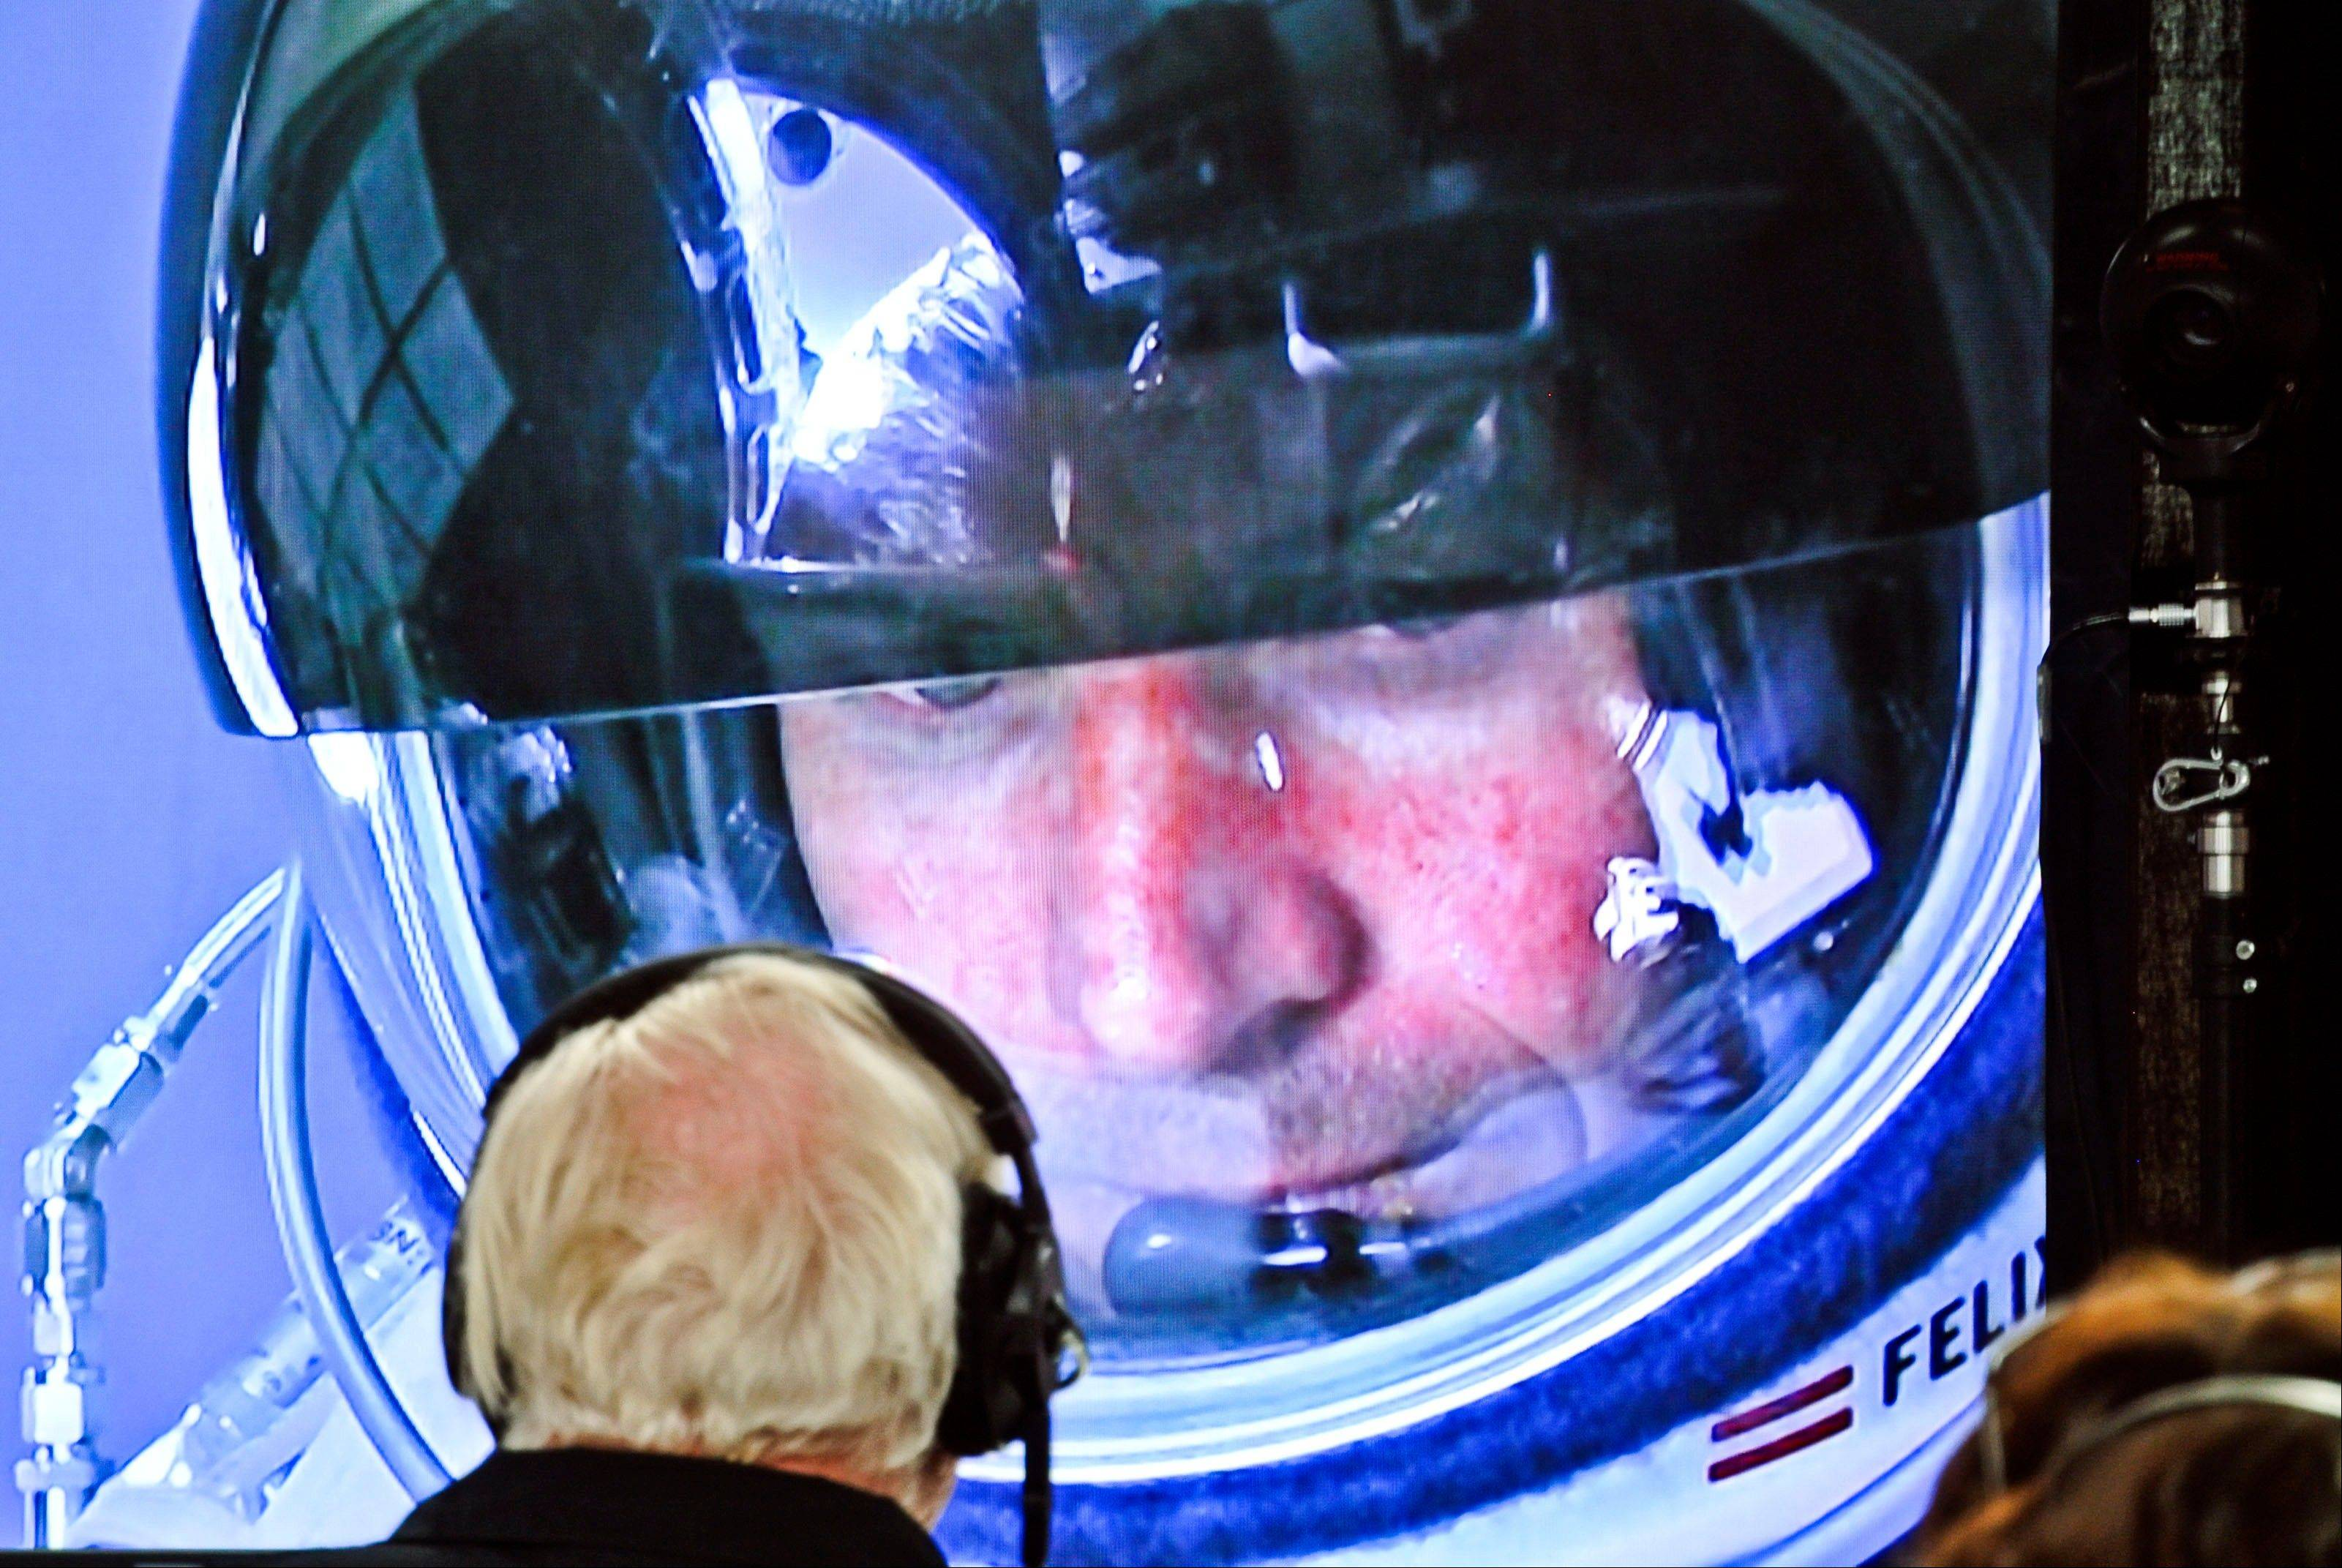 In this photo provided by Red Bull, pilot Felix Baumgartner of Austria is seen in a screen at mission control center in the capsule during the final manned flight for Red Bull Stratos in Roswell, N.M. on Sunday, Oct. 14, 2012. Baumgartner plans to jump from an altitude of 120,000 feet, an altitude chosen to enable him to achieve Mach 1 in free fall, which would deliver scientific data to the aerospace community about human survival from high altitudes.